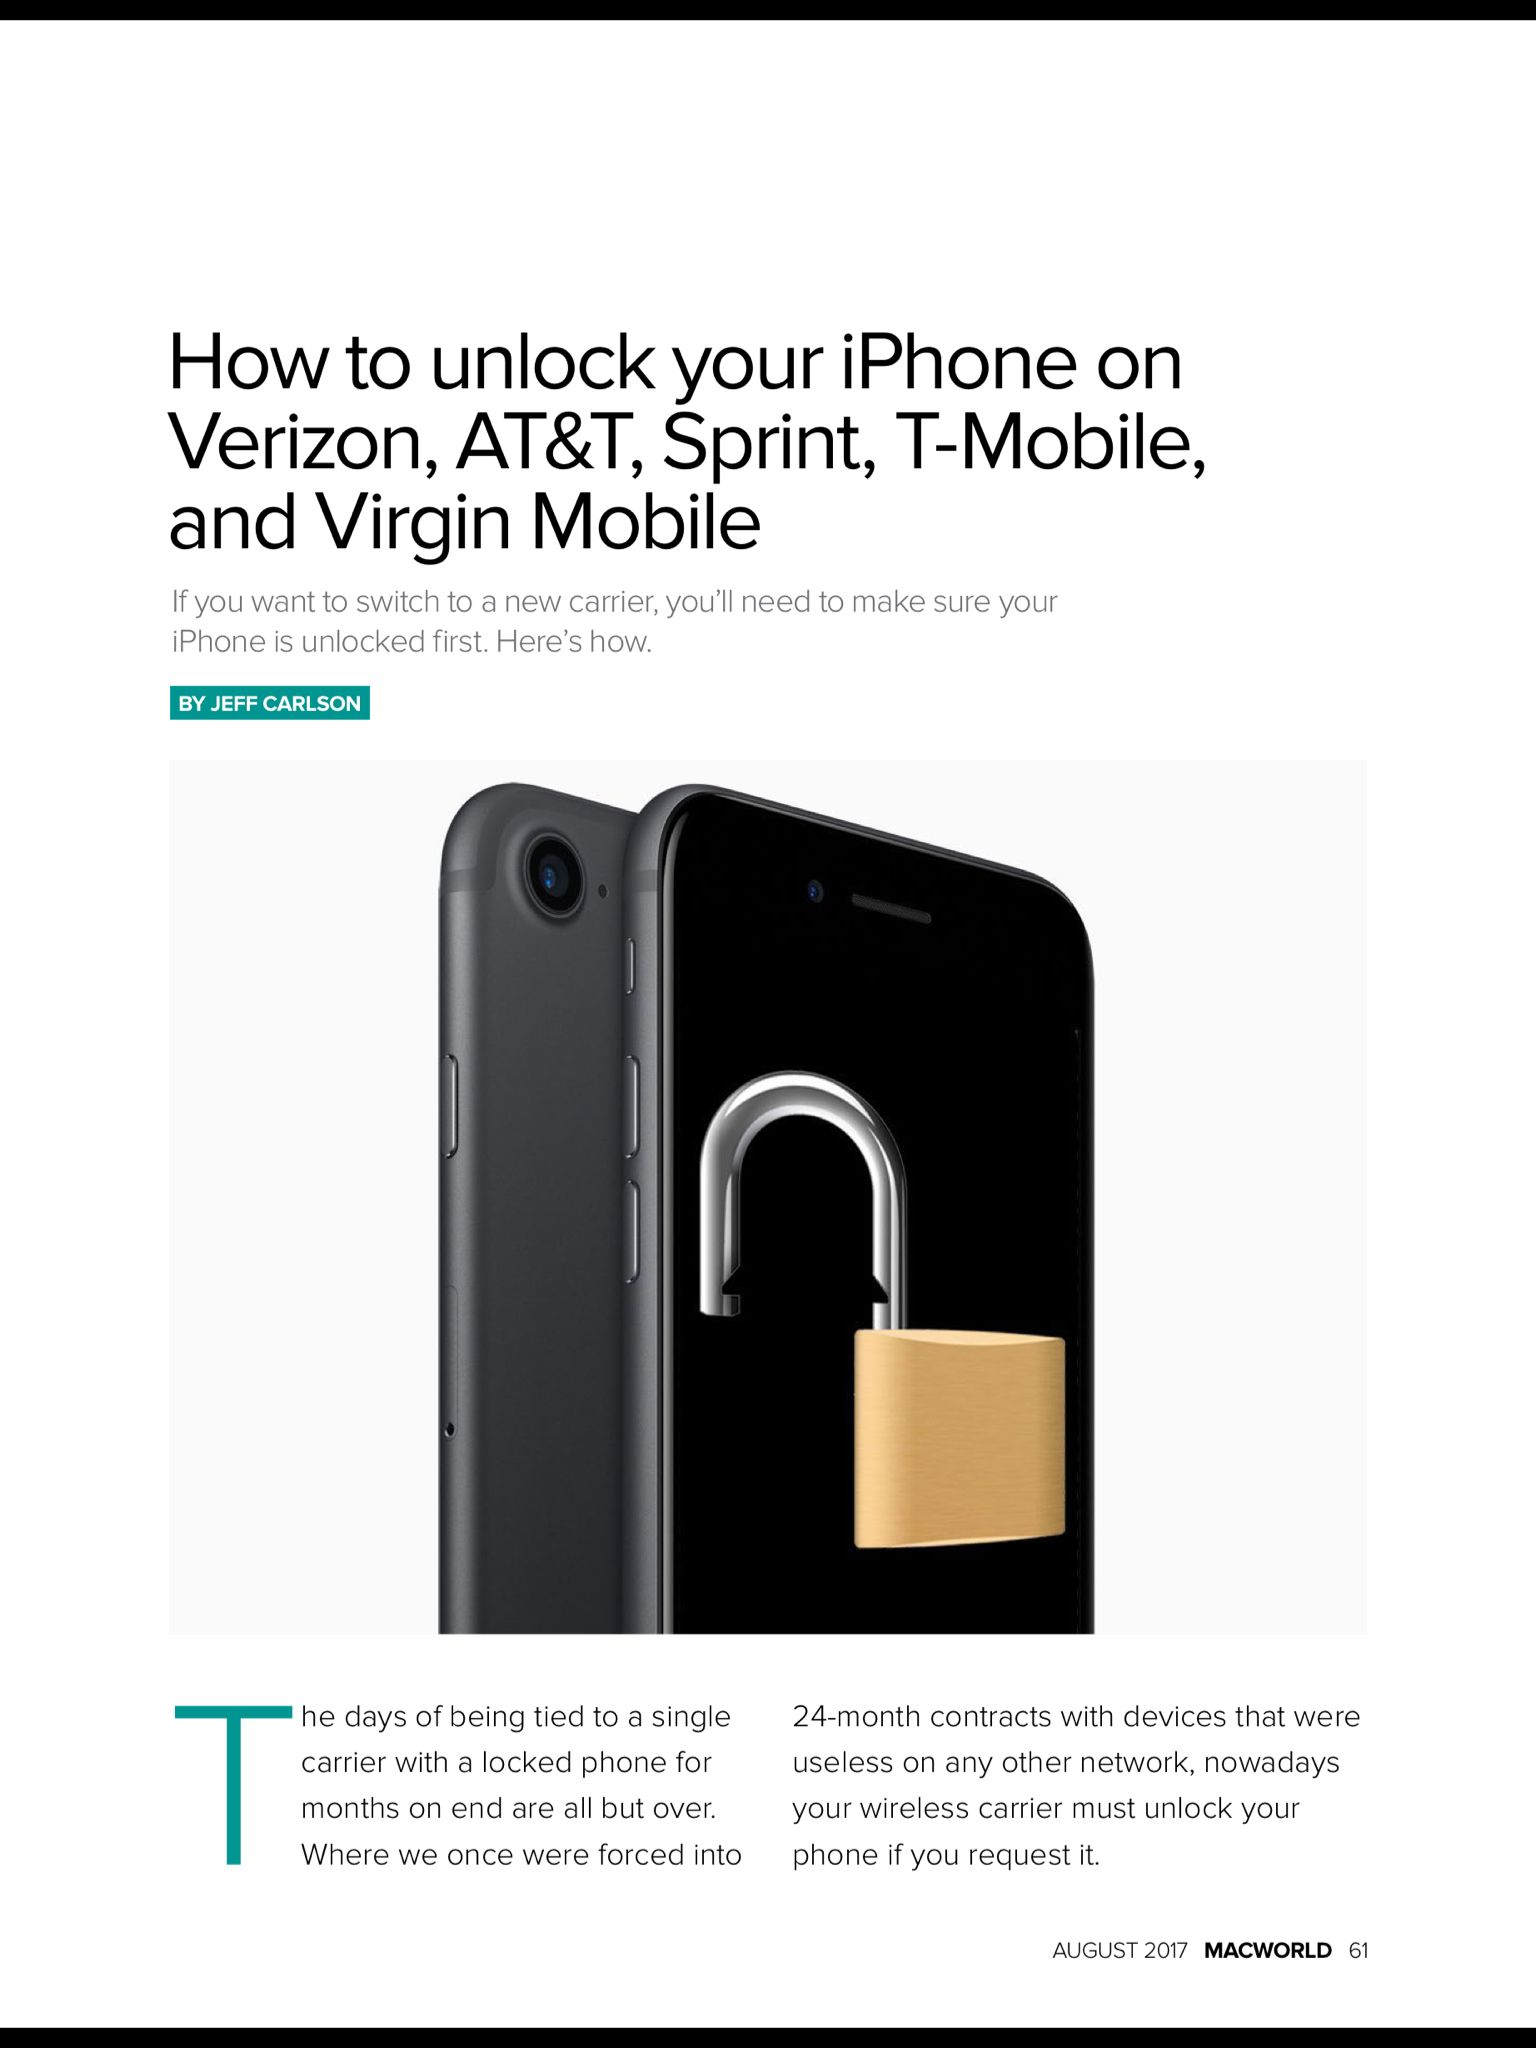 """How to unlock your iPhone"" from Macworld, August 2017"